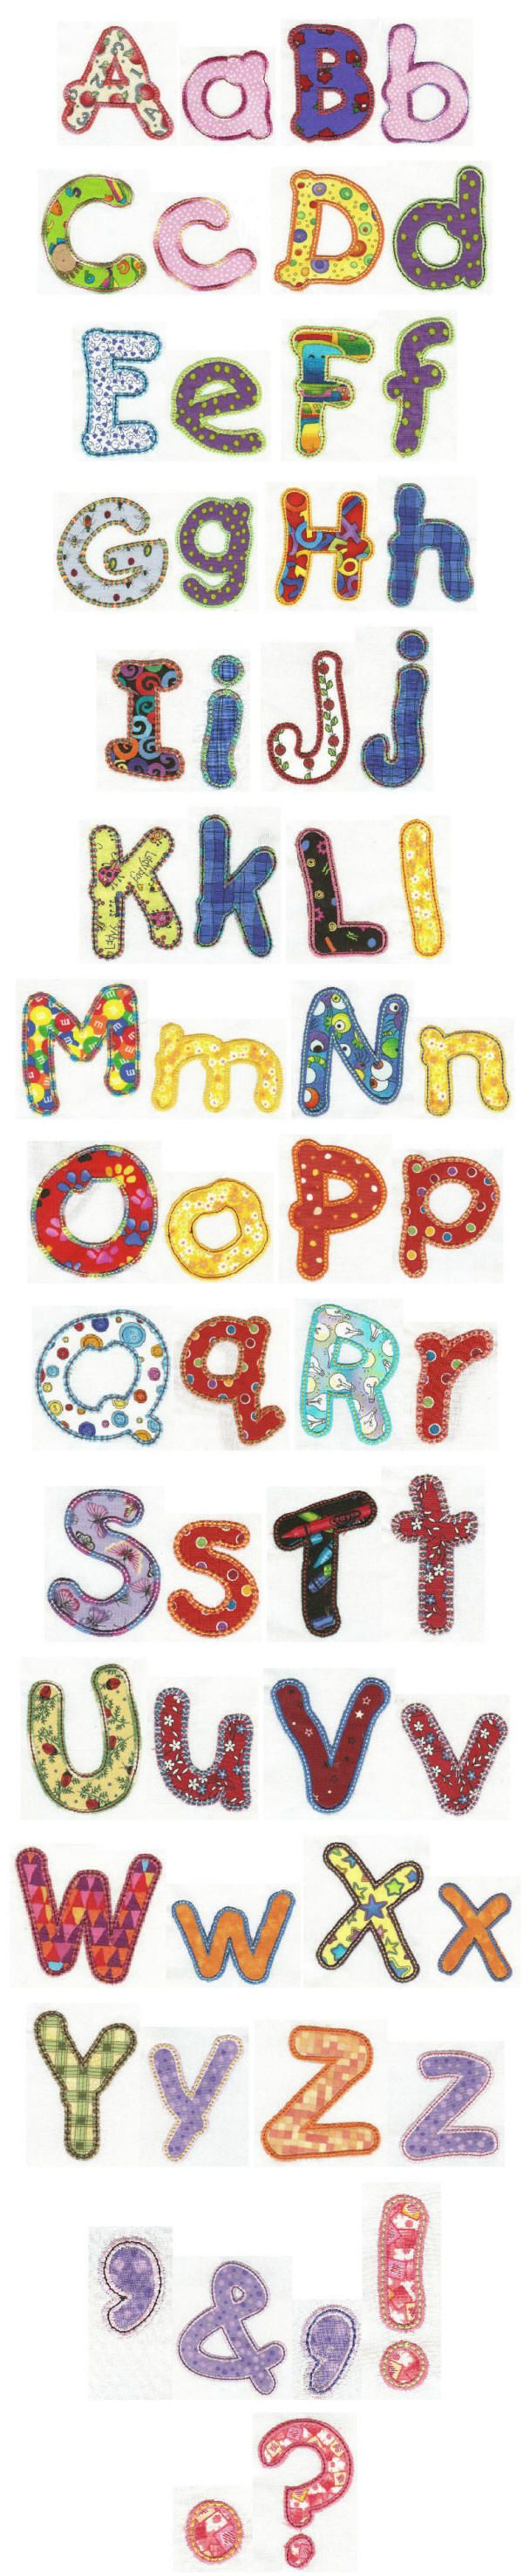 Embroidery | Free Machine Embroidery Designs | Kids Applique Alphabet